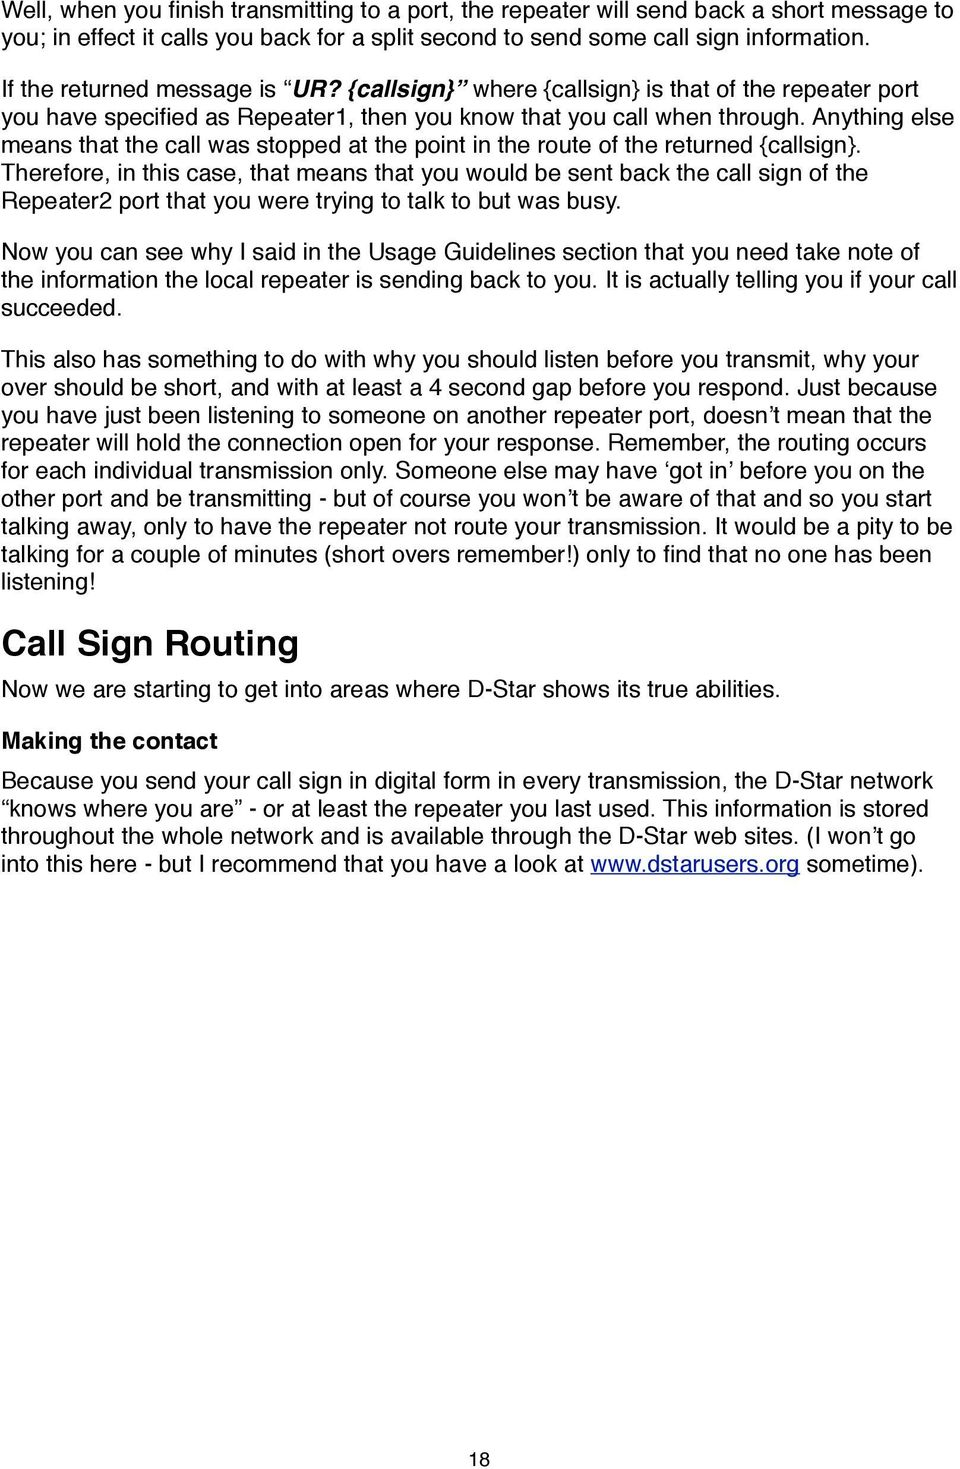 Anything else means that the call was stopped at the point in the route of the returned {callsign}.